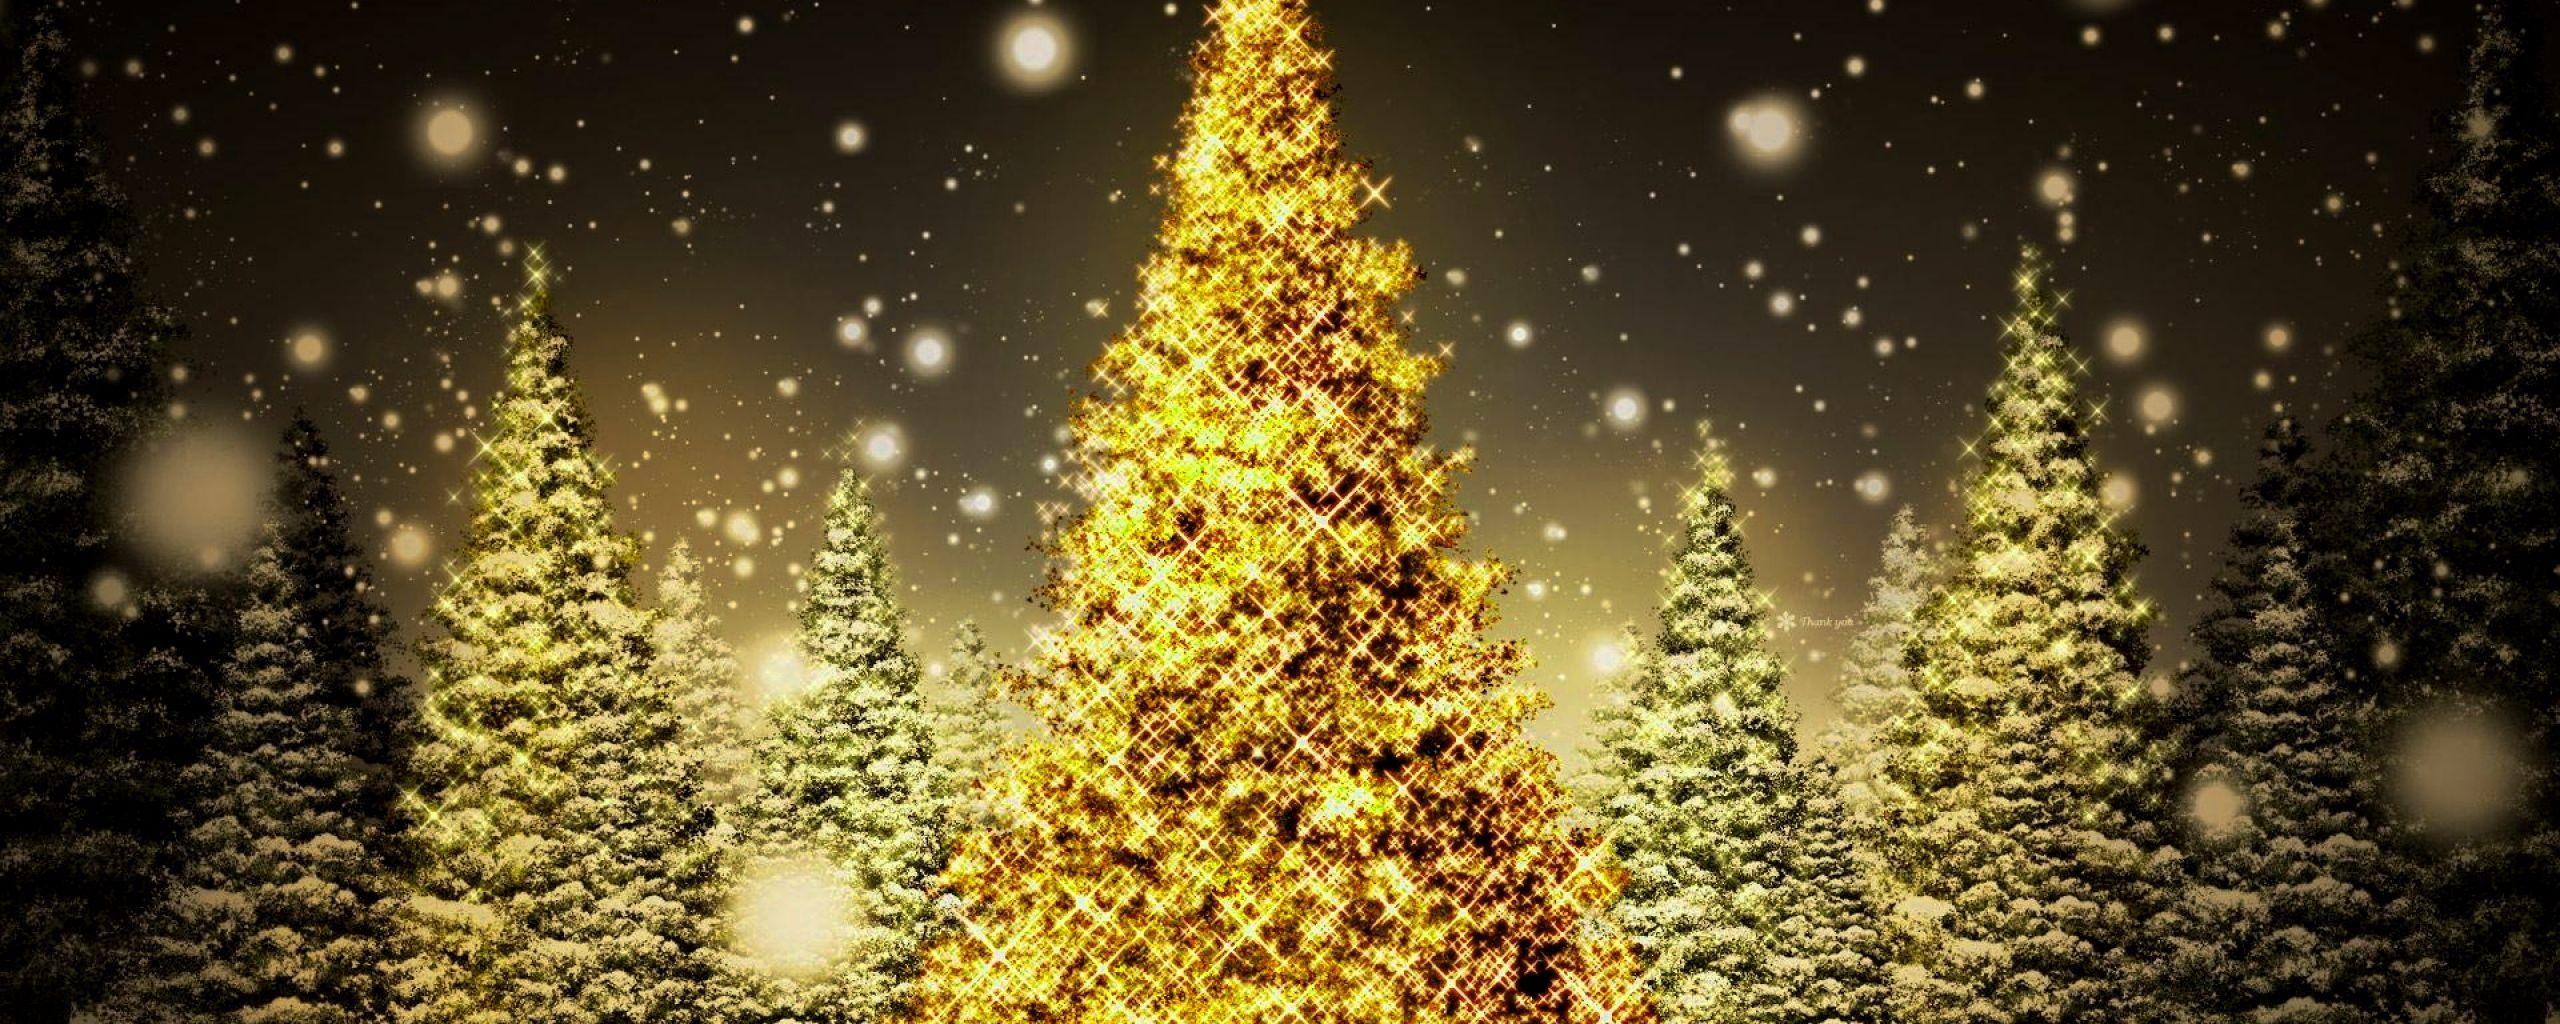 Merry Christmas Dual Screen Wallpapers Top Free Merry Christmas Dual Screen Backgrounds Wallpaperaccess